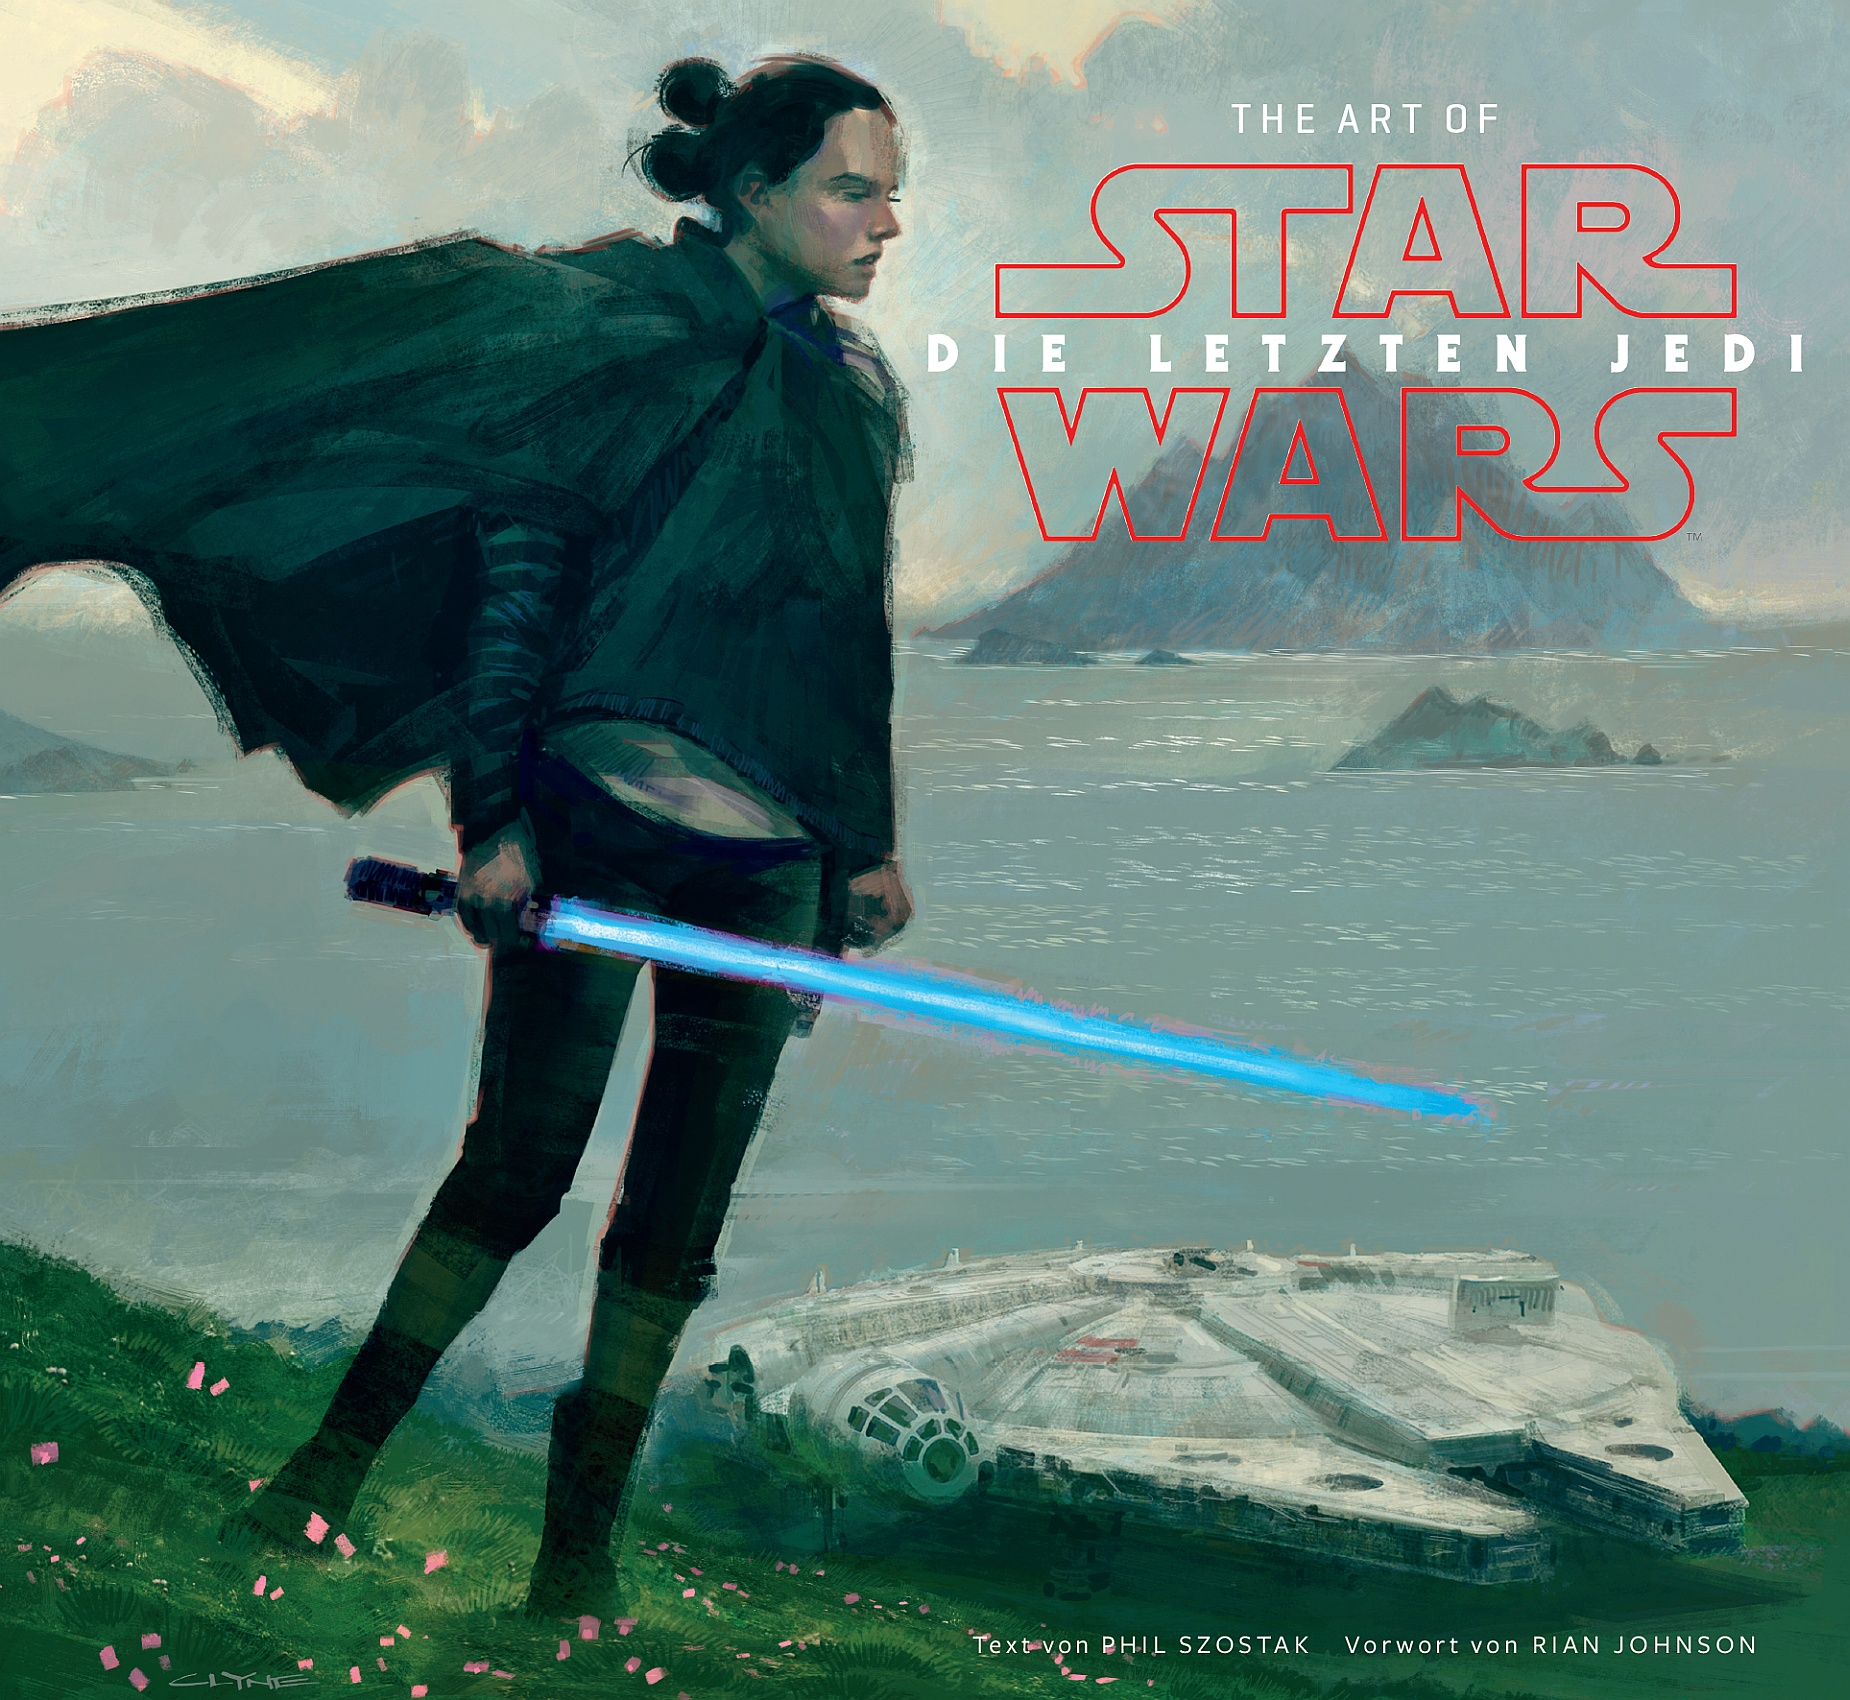 The Art of Star Wars: Die letzten Jedi (22.01.2018)